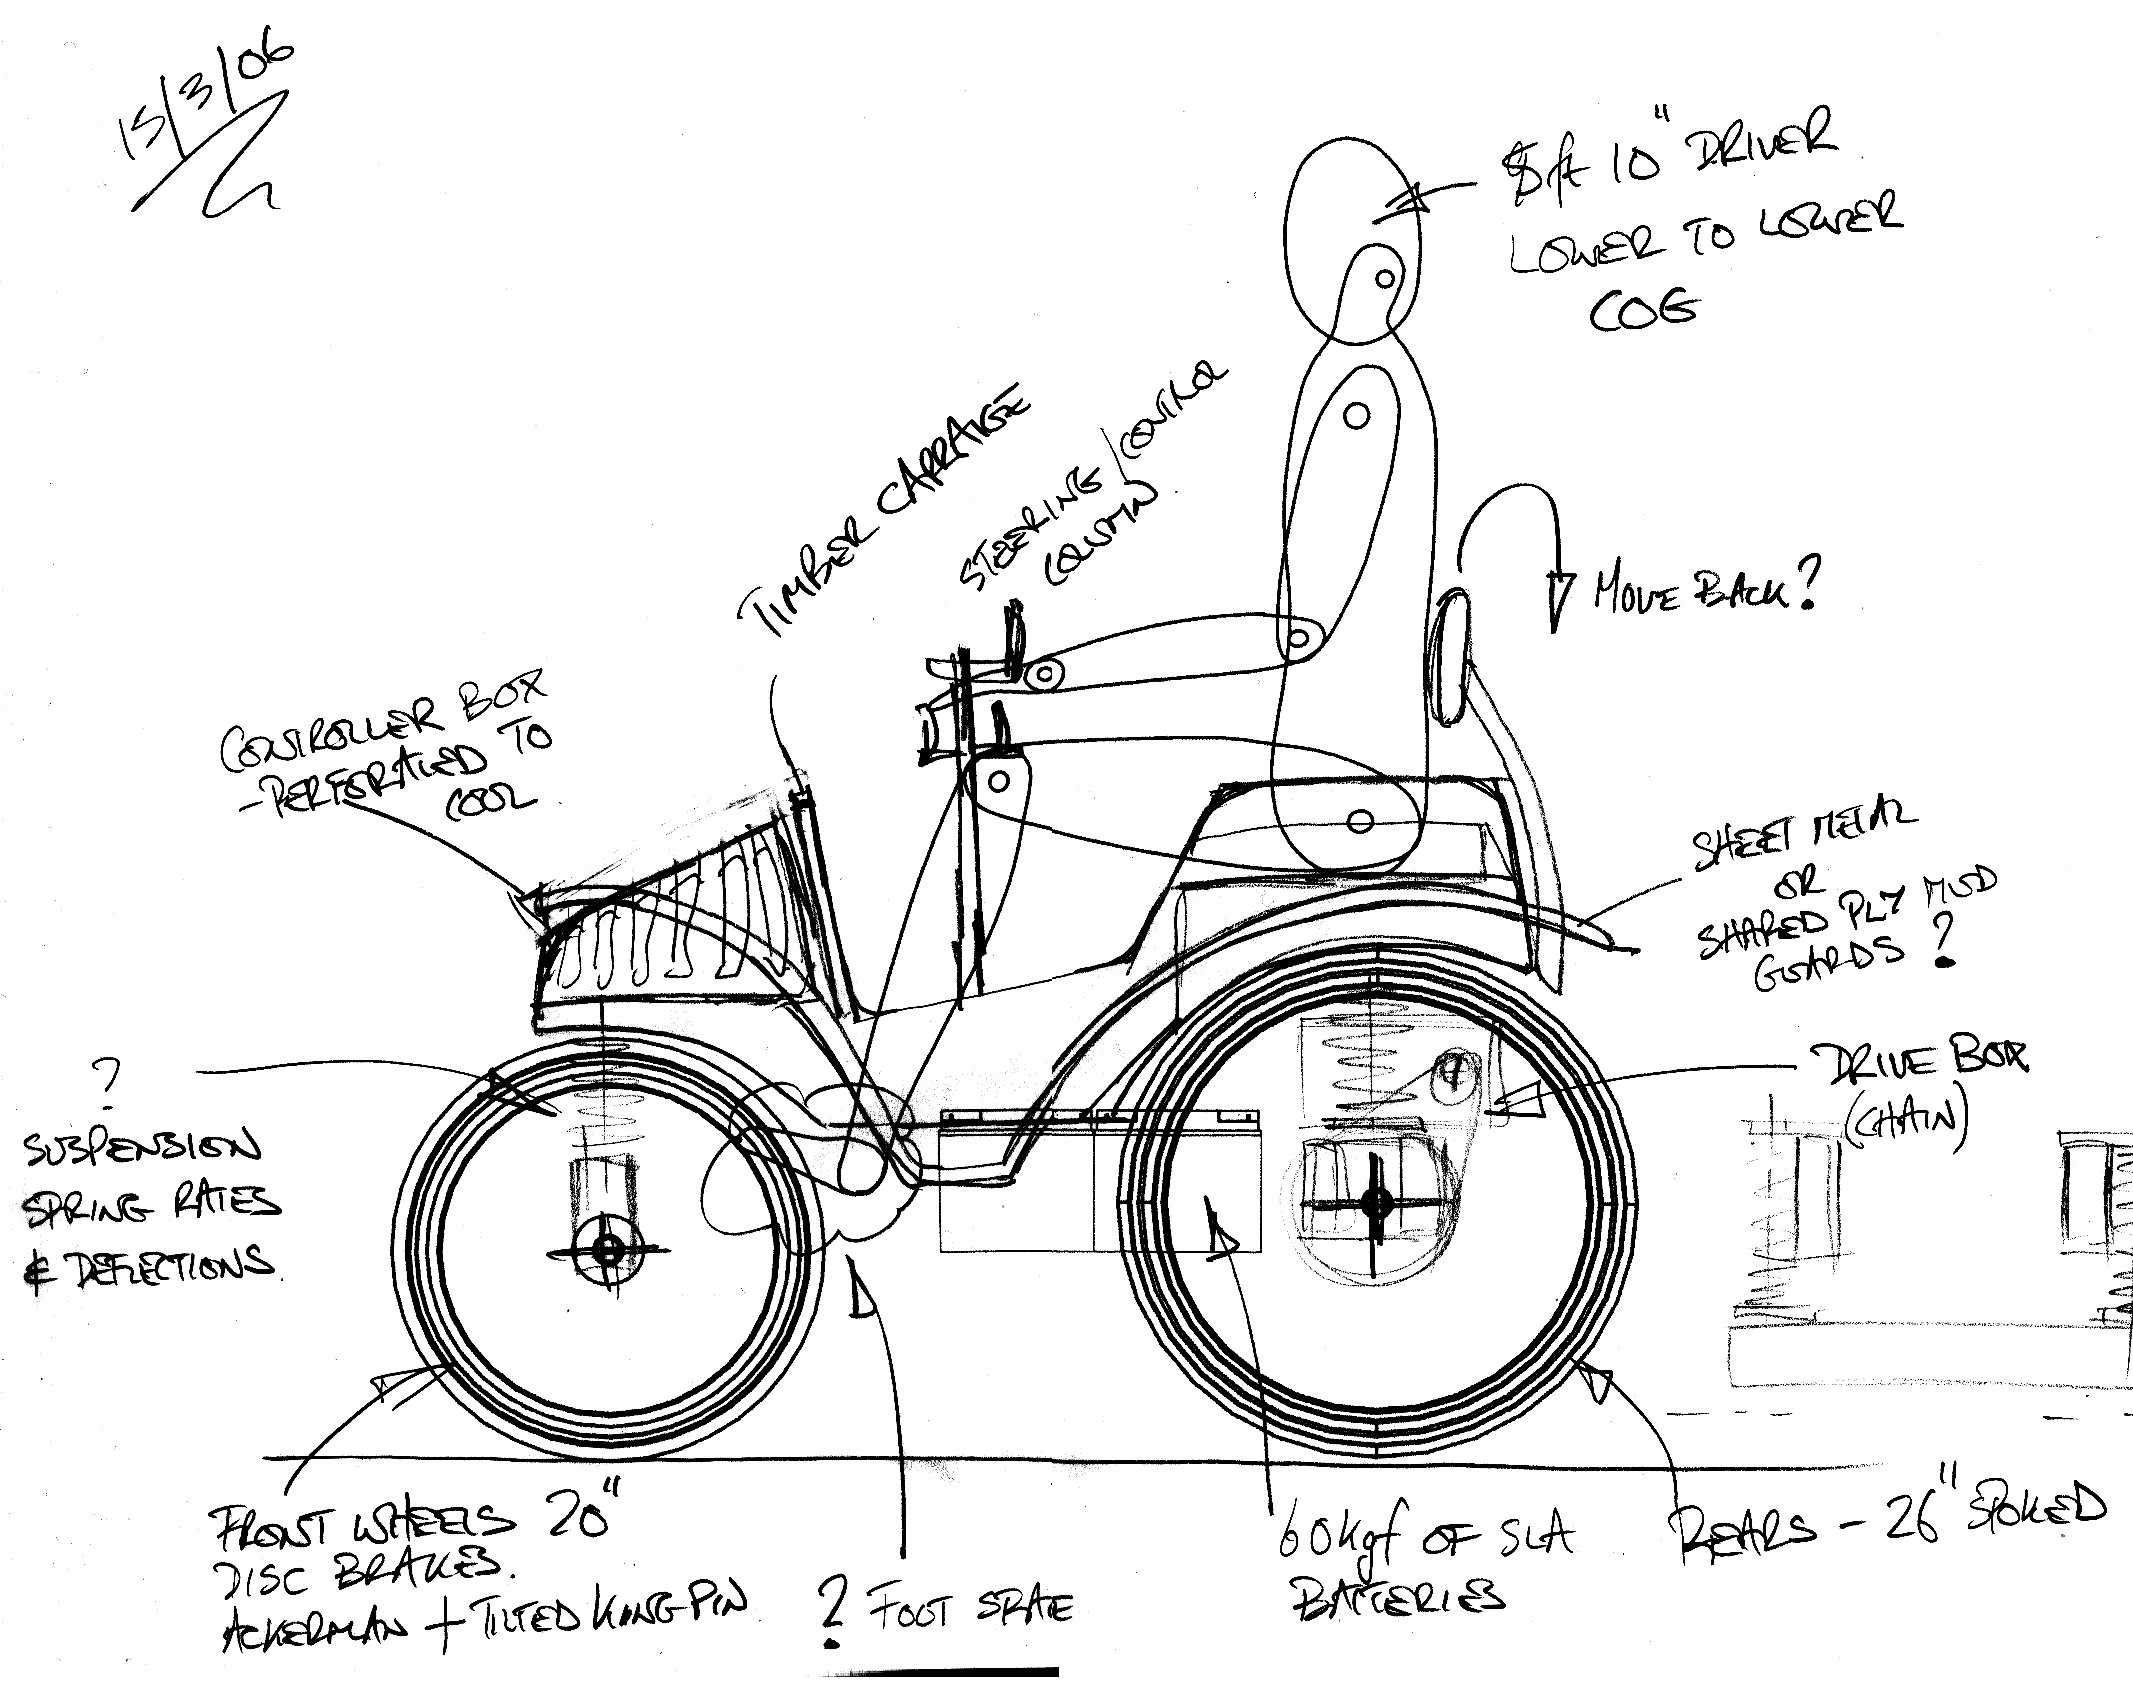 Plans for 3/4 scale electric veteran style voiturette.